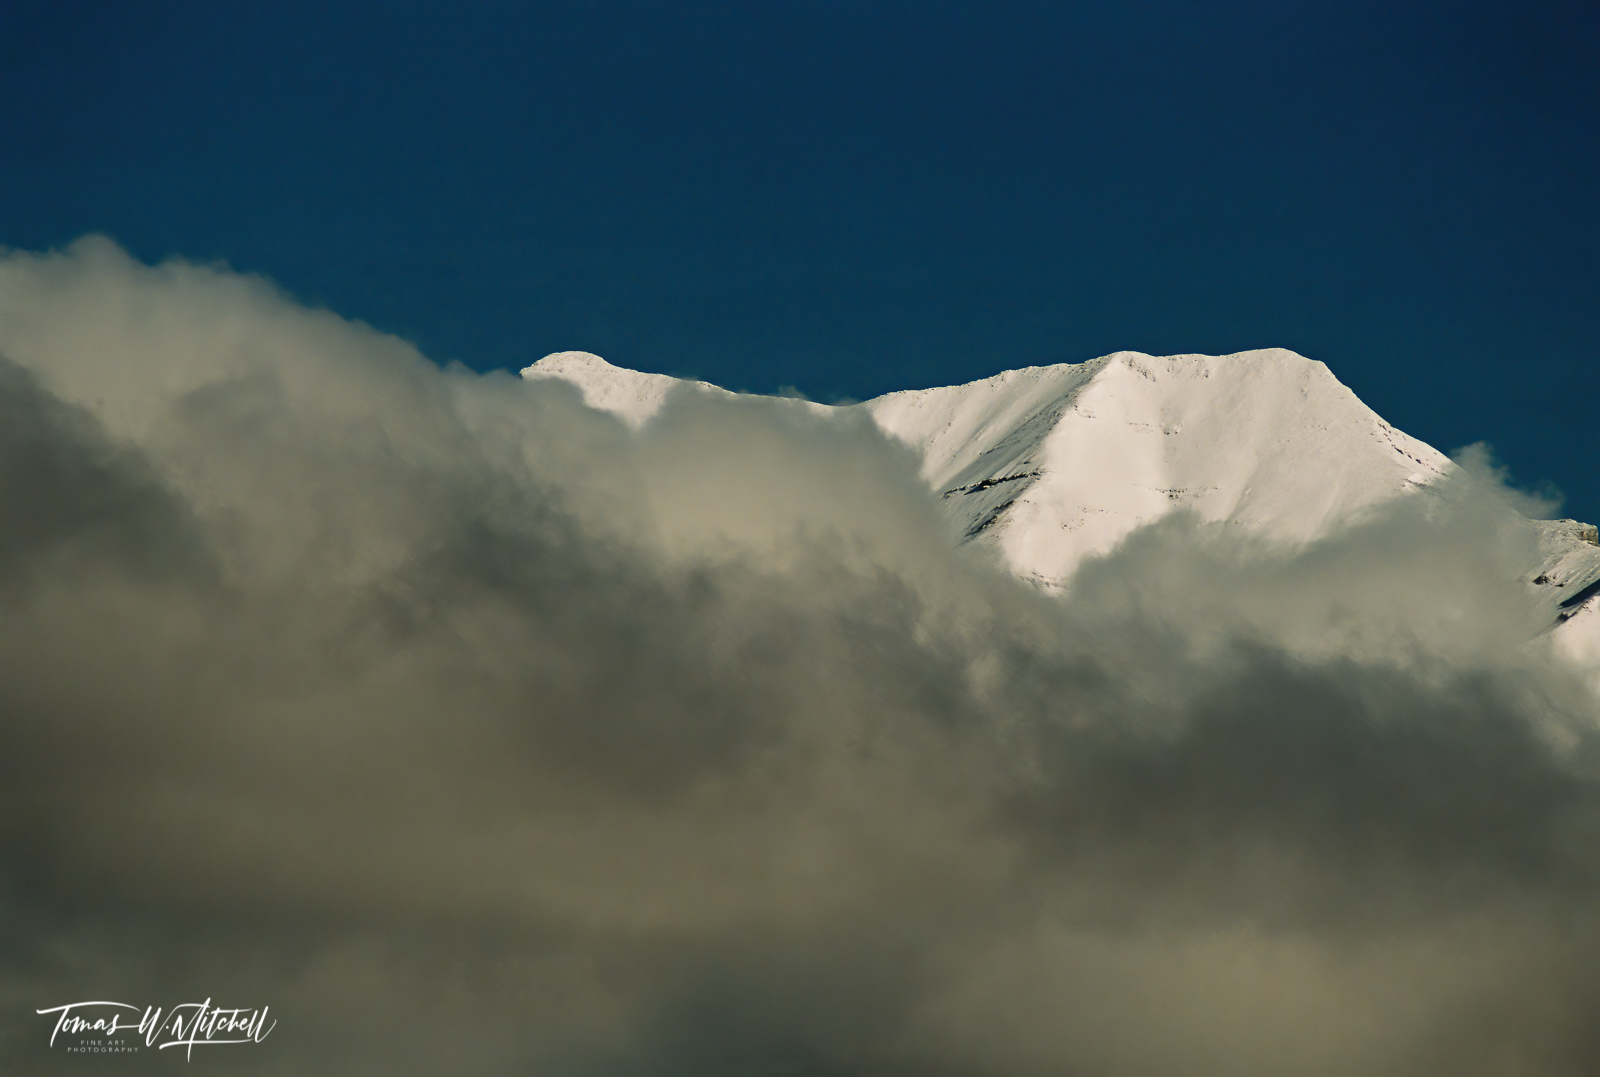 limited edition, fine art, prints, mount timpanogos, timp, utah, peak, clouds, blue sky, mountain, photograph, winter, film, snow, photo